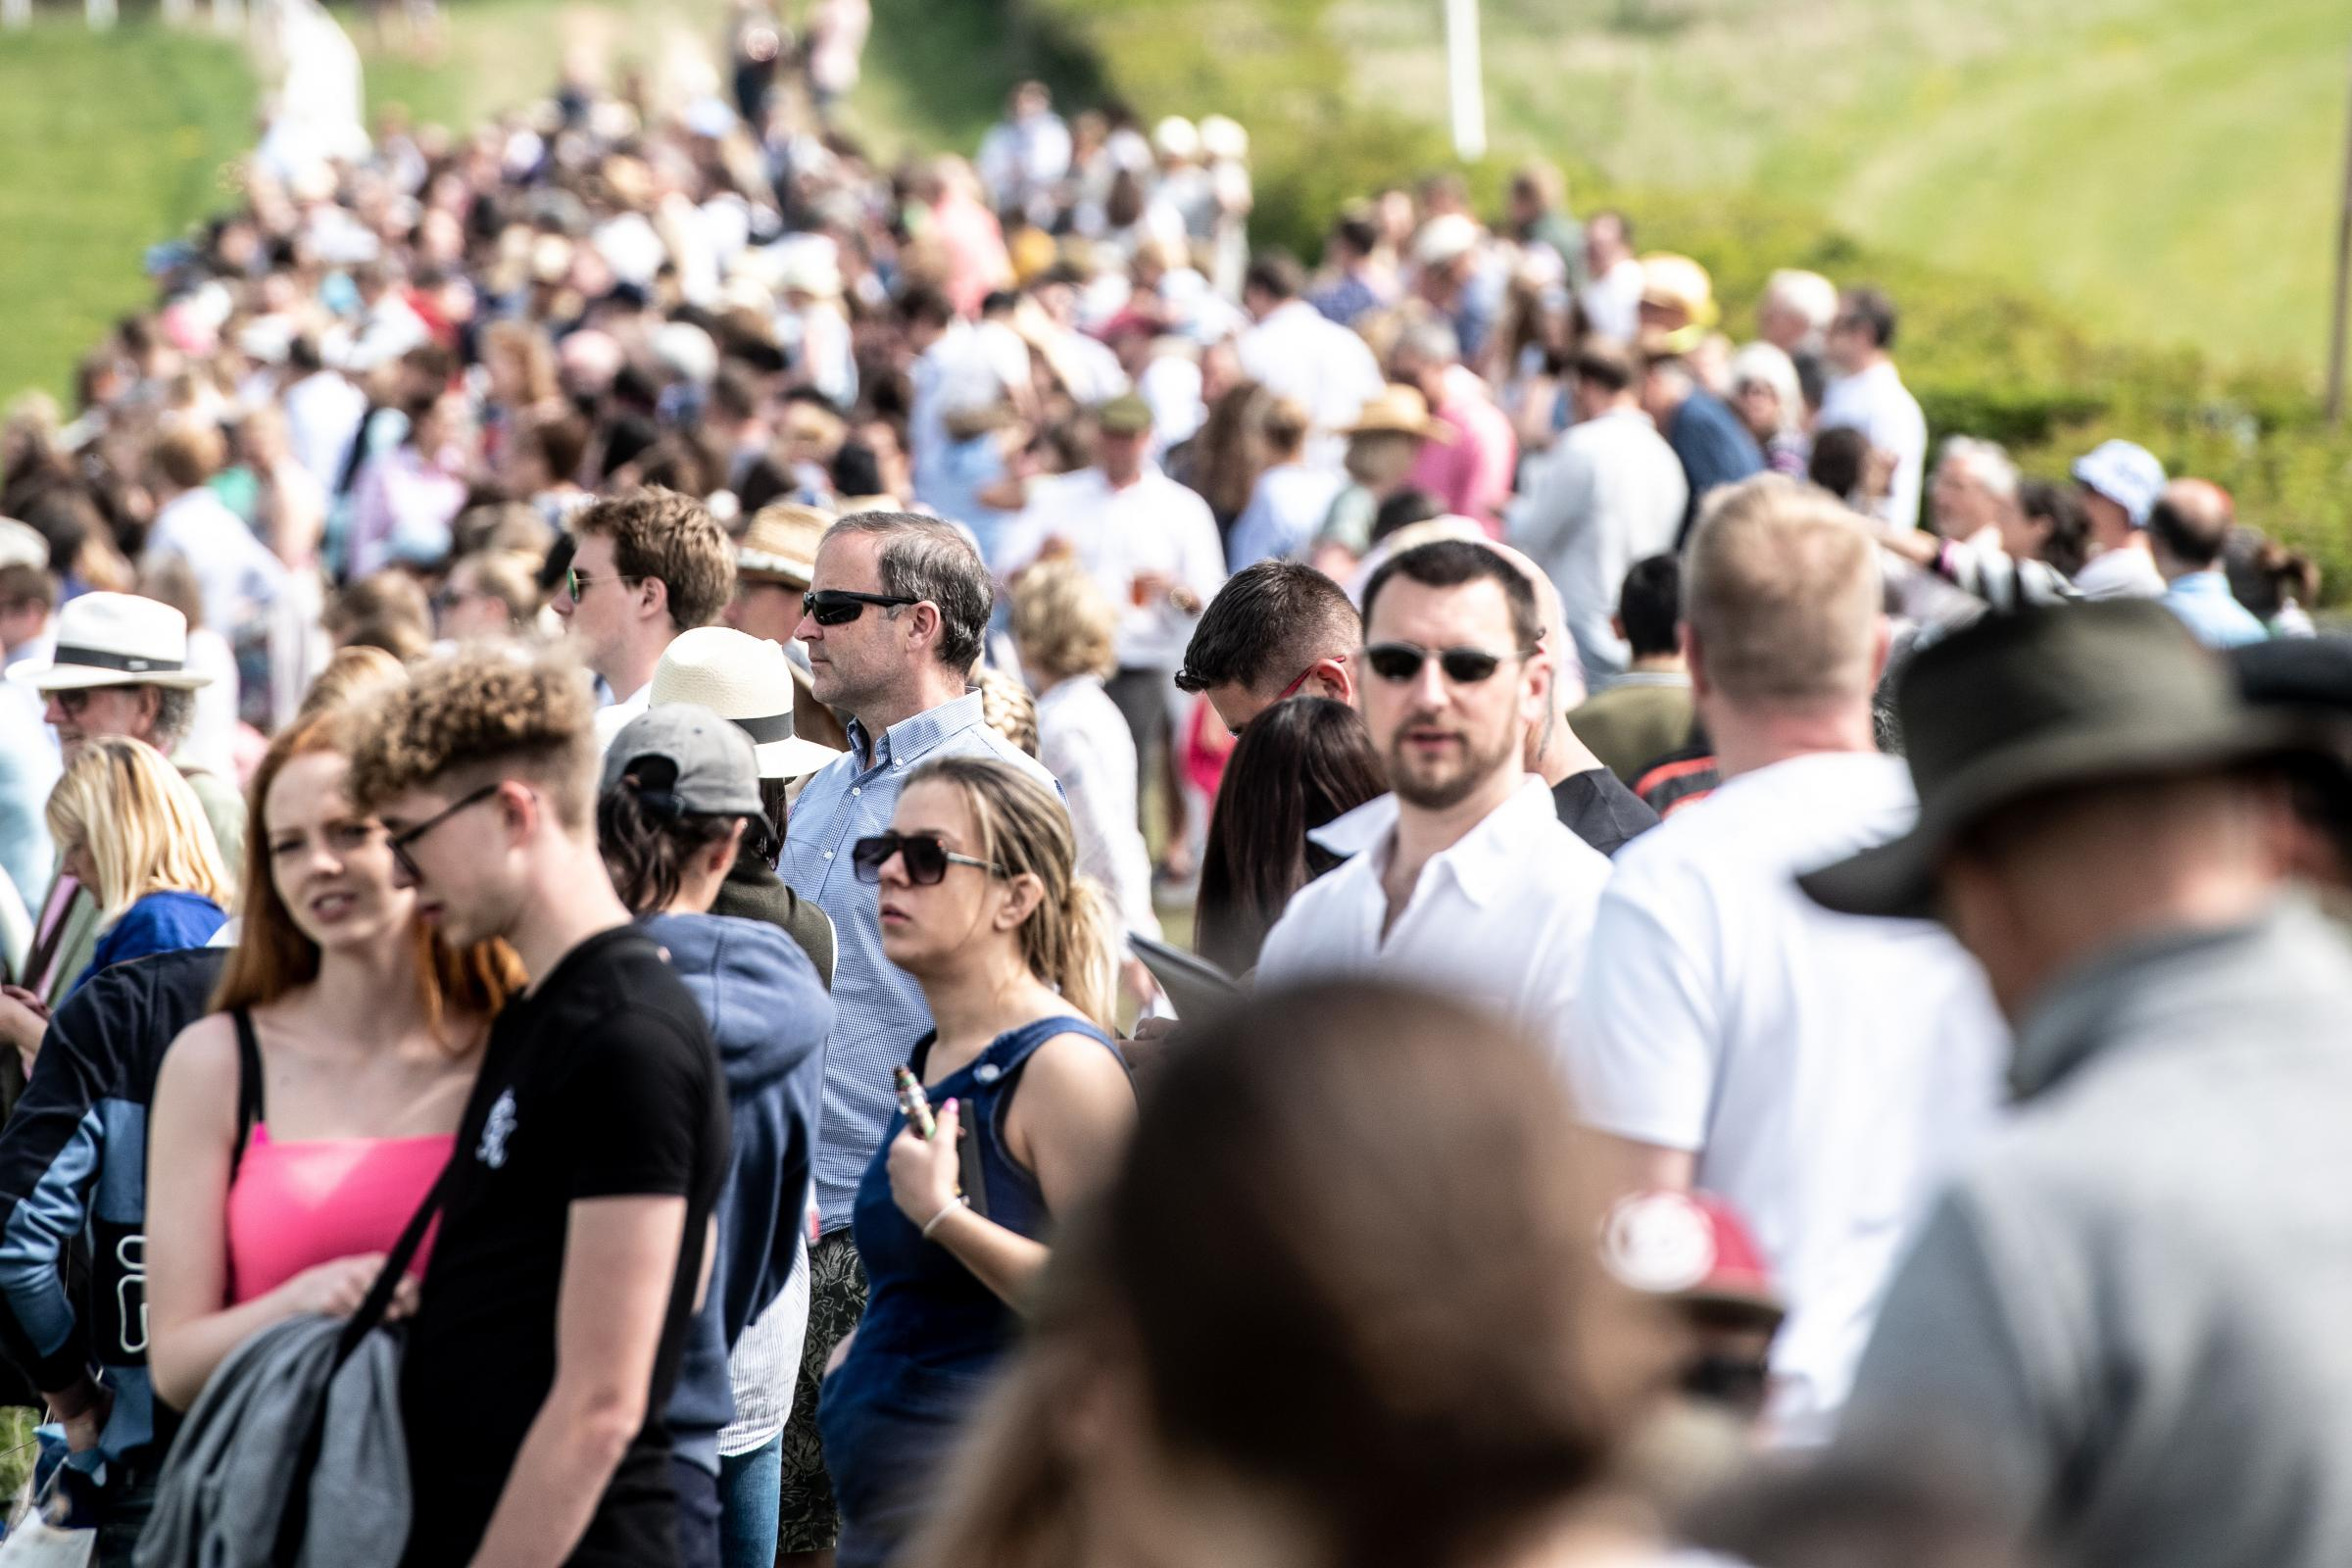 Crowds enjoy racing in sunshine at Lockinge point-to-point